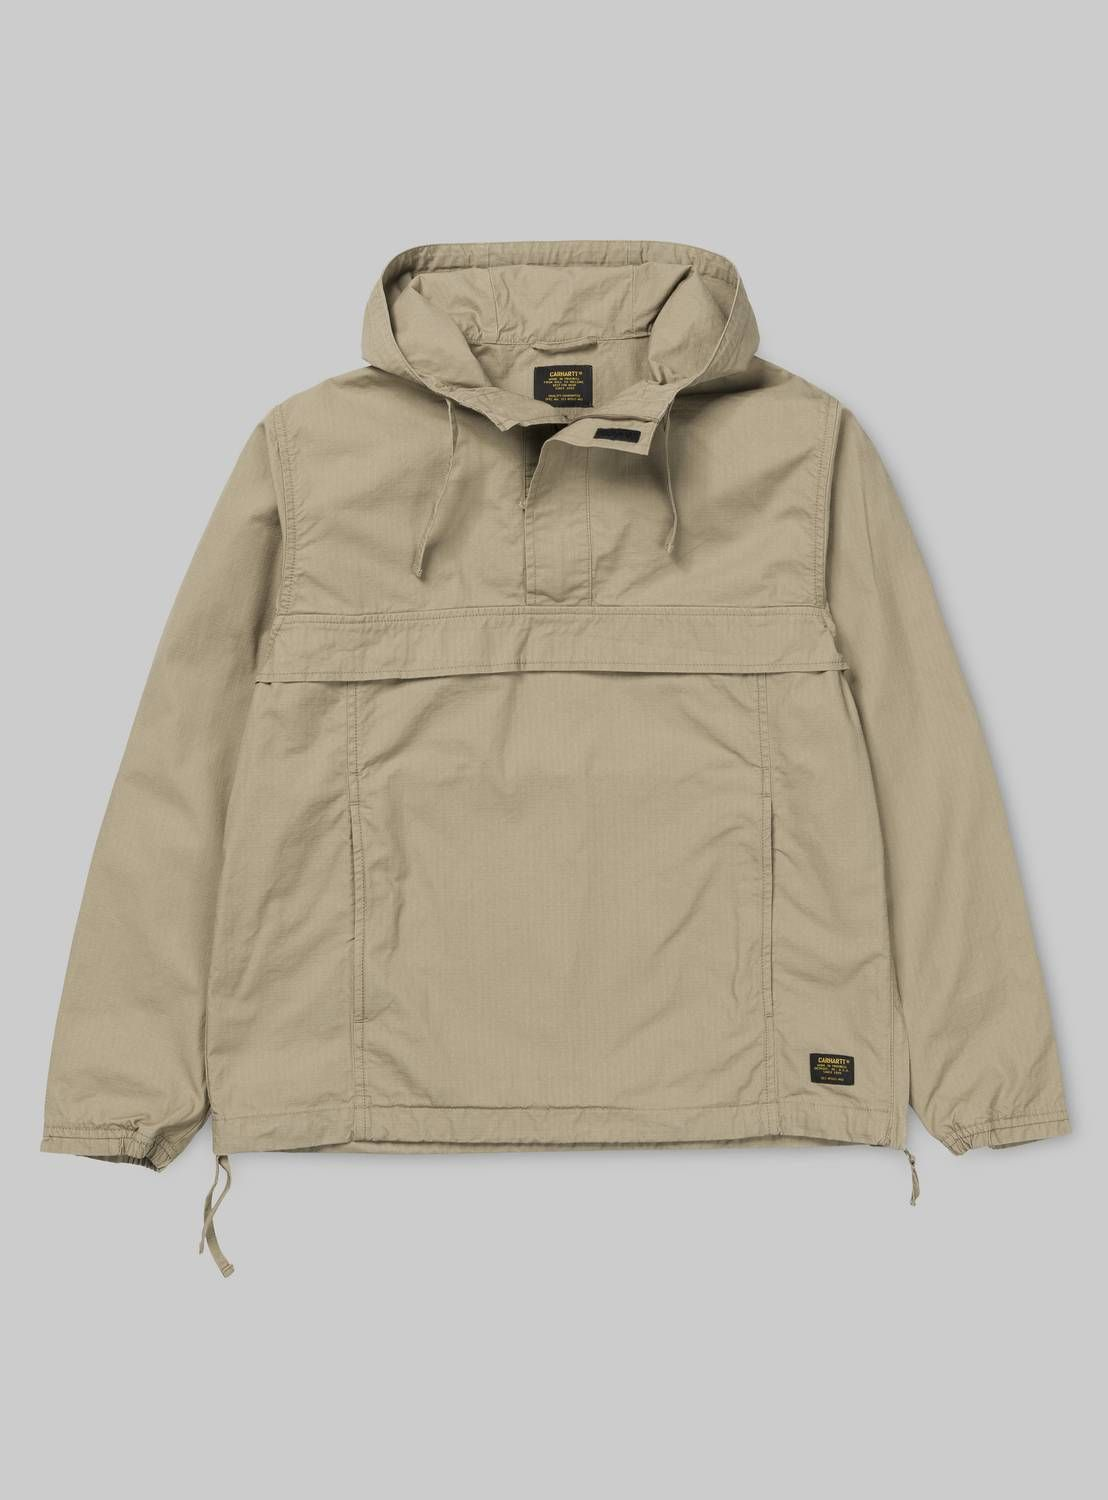 1e21f426ce8 Shop the Carhartt WIP Vega Pullover from the offical online store. |  Largest selection